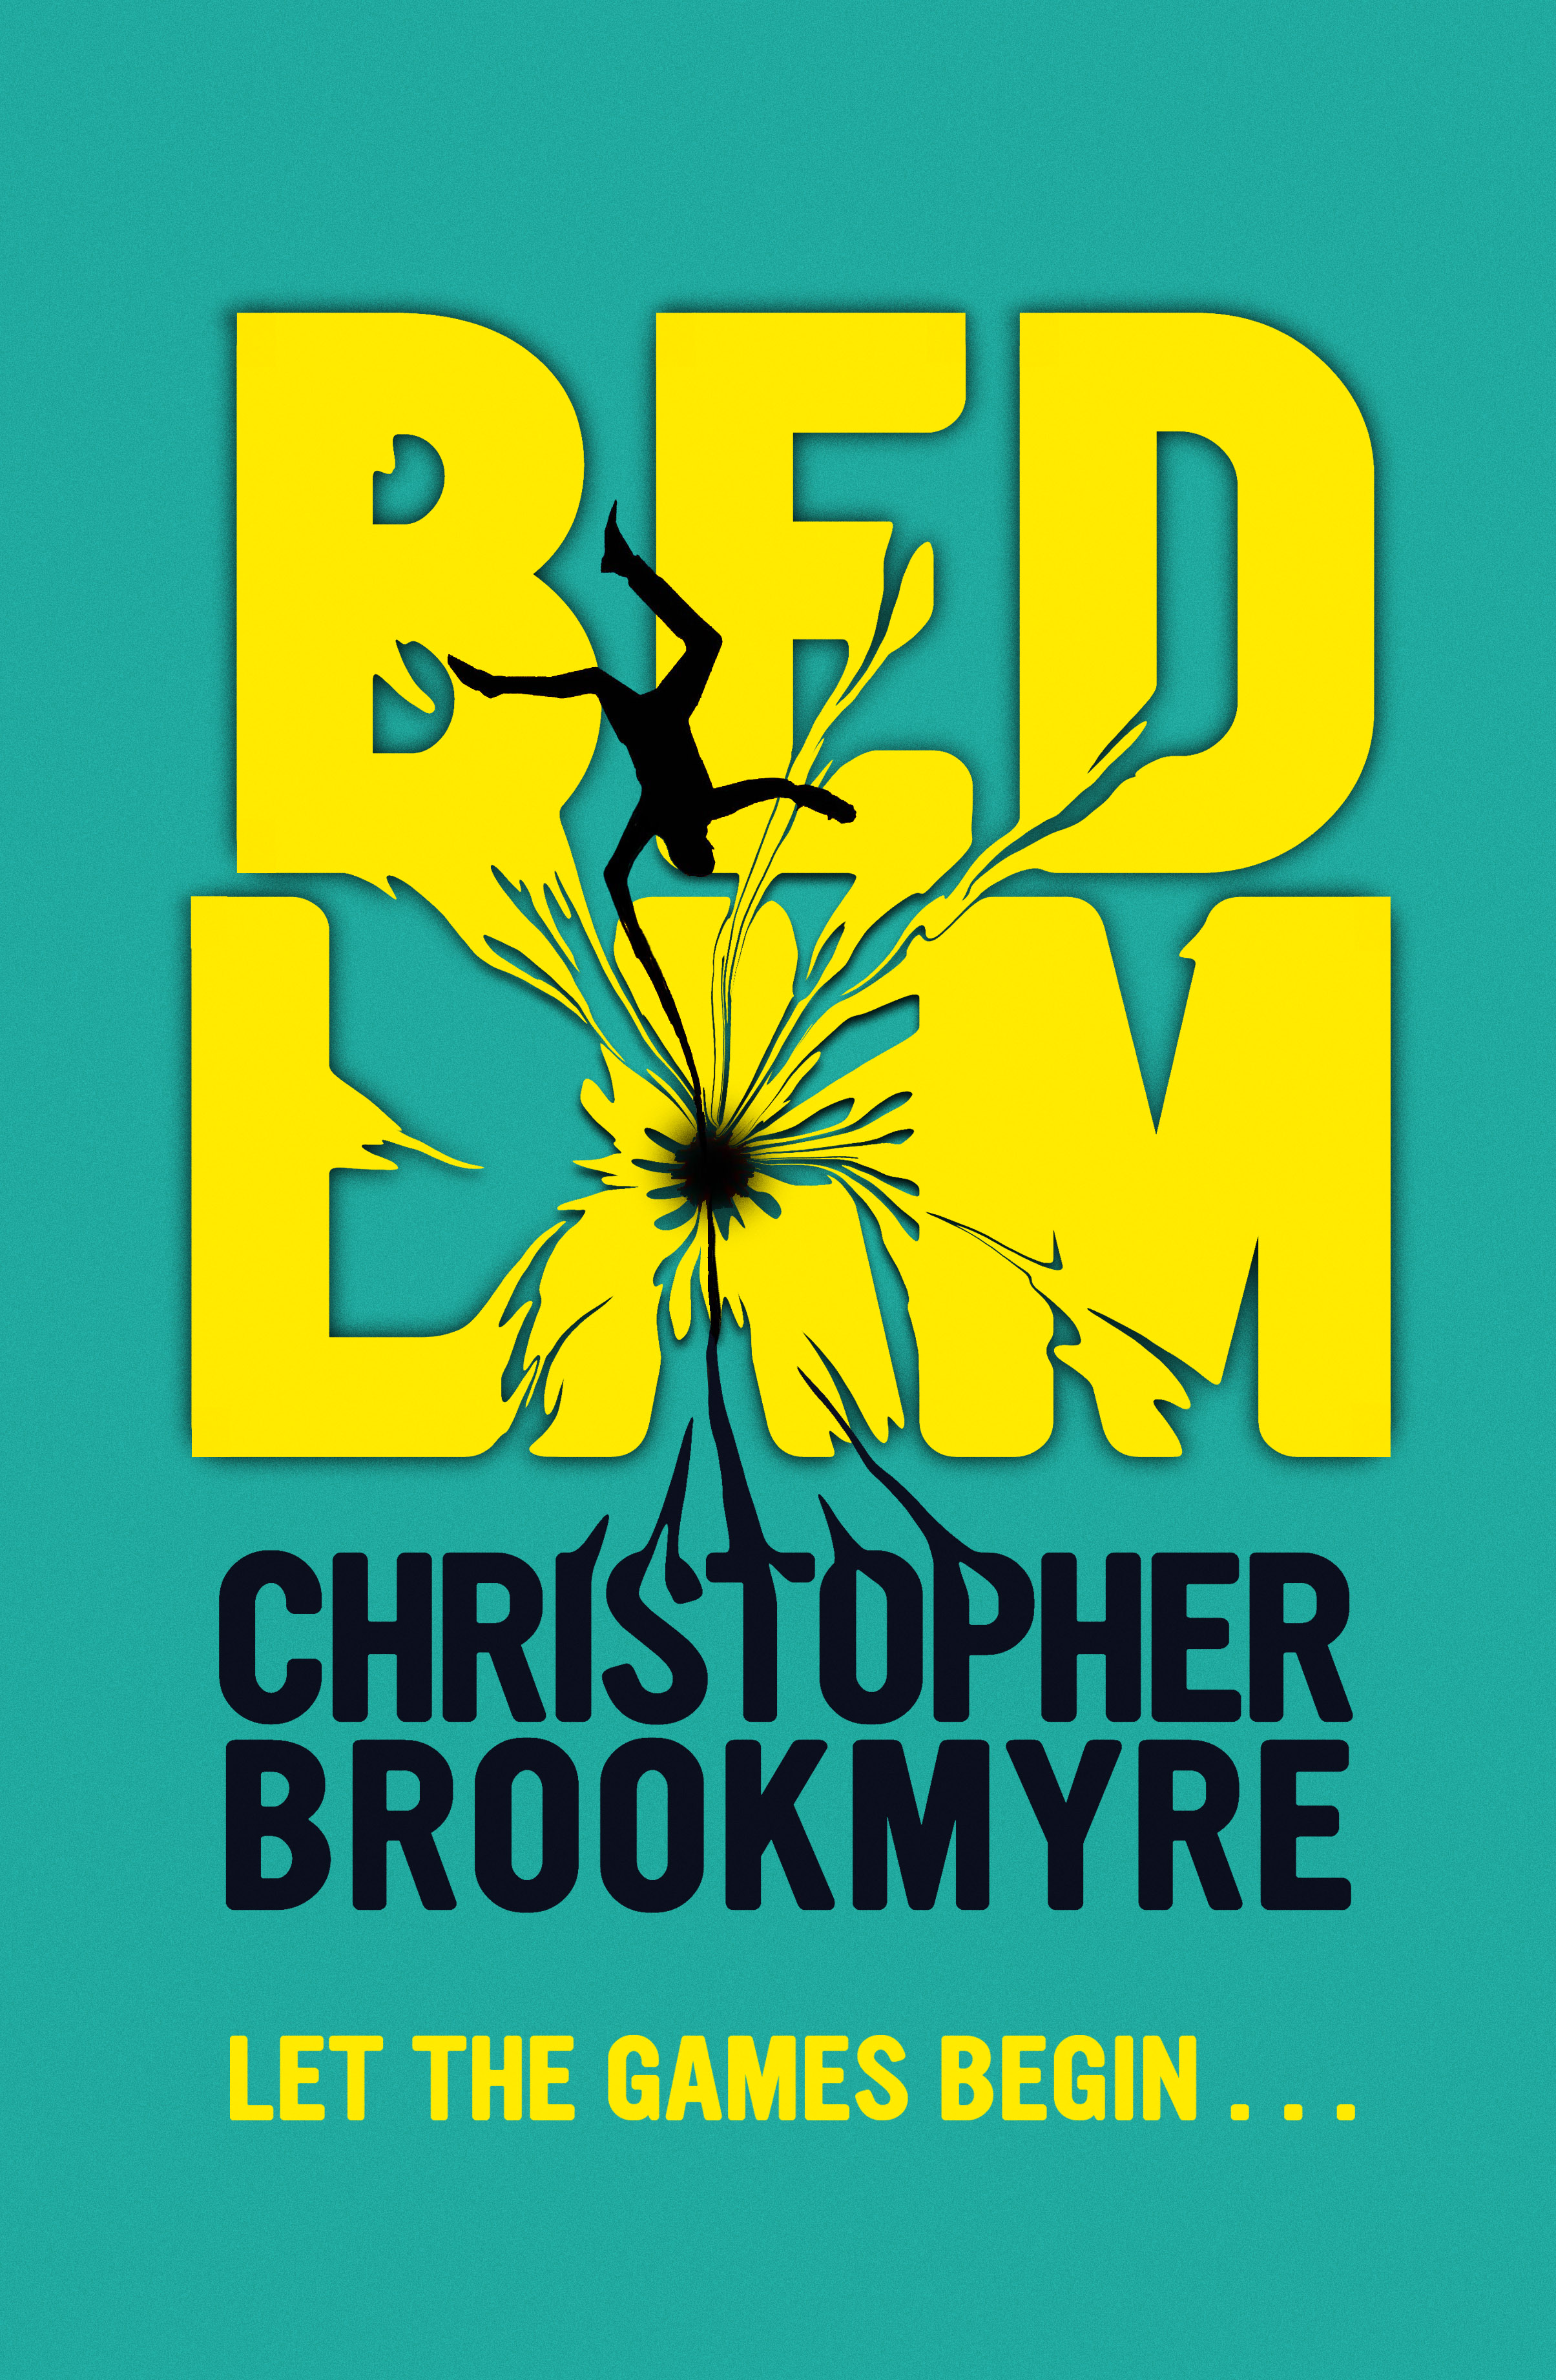 The cover of BEDLAM shows a man falling into a vortex